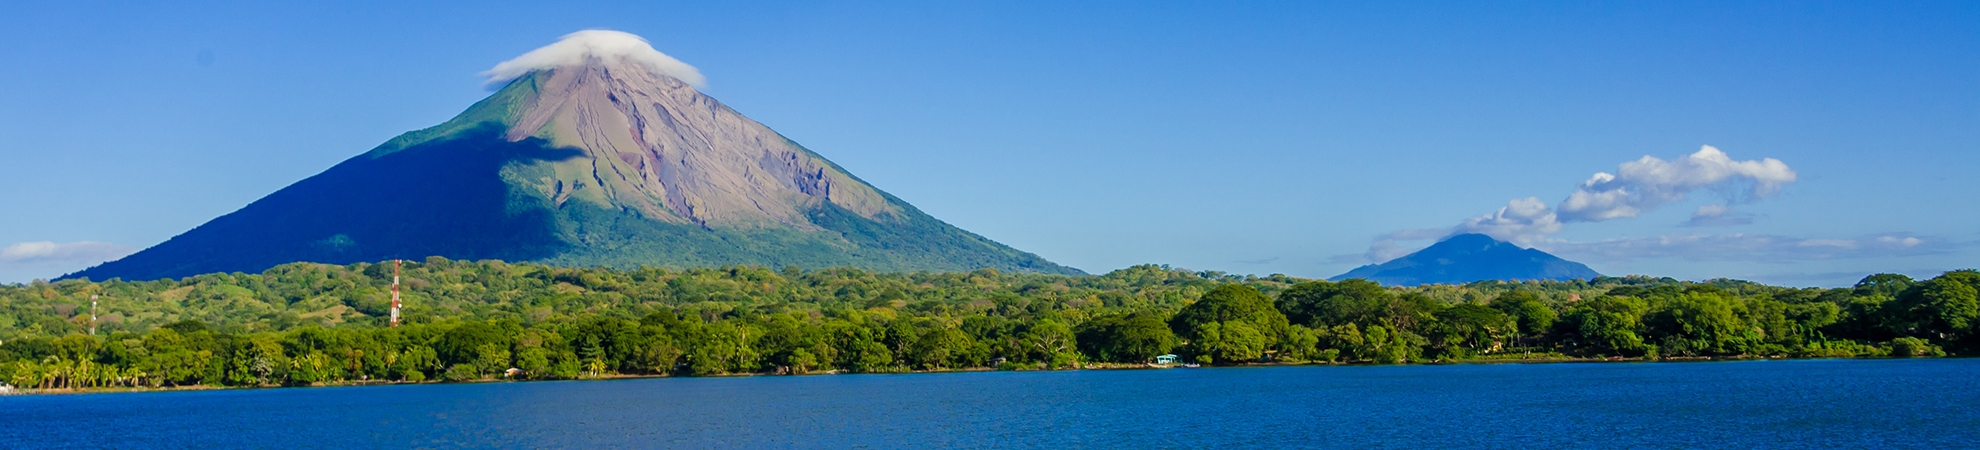 Fiche pays Nicaragua